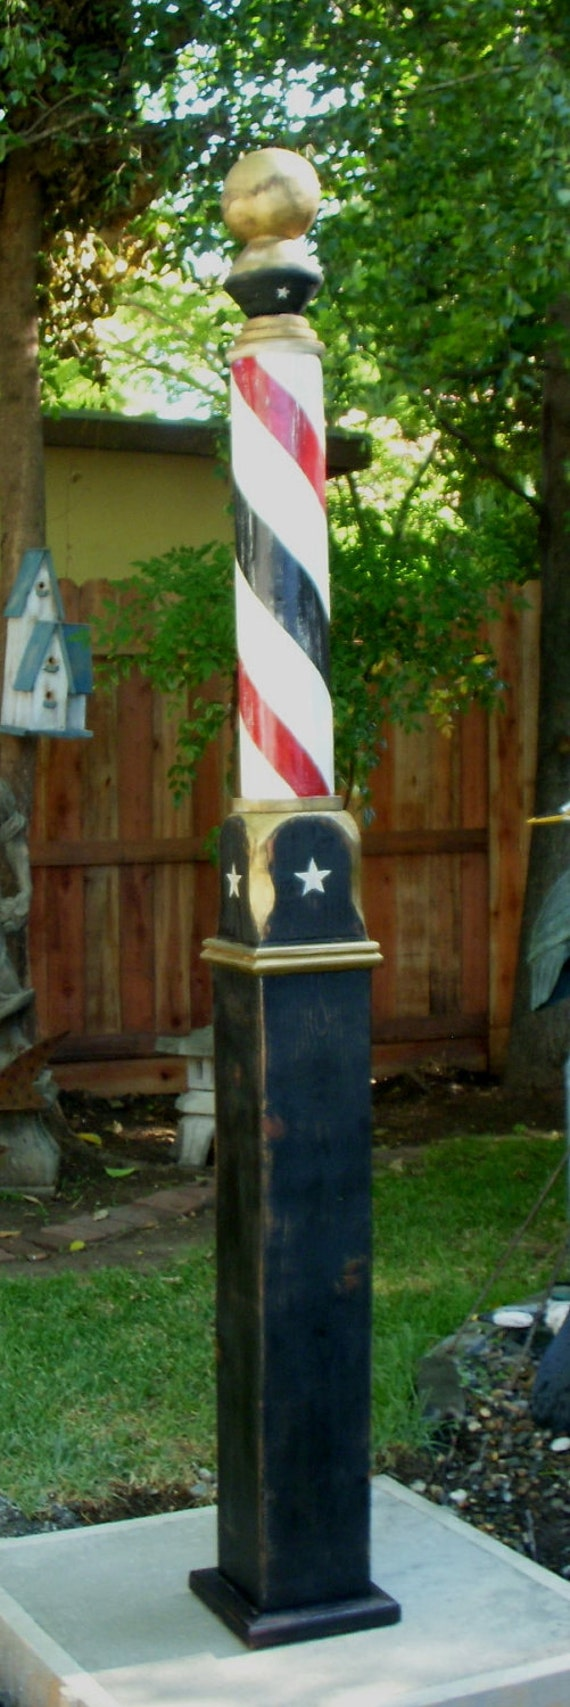 Handcrafted Tall Standing Barber Poles - Patriotic and Antiqued